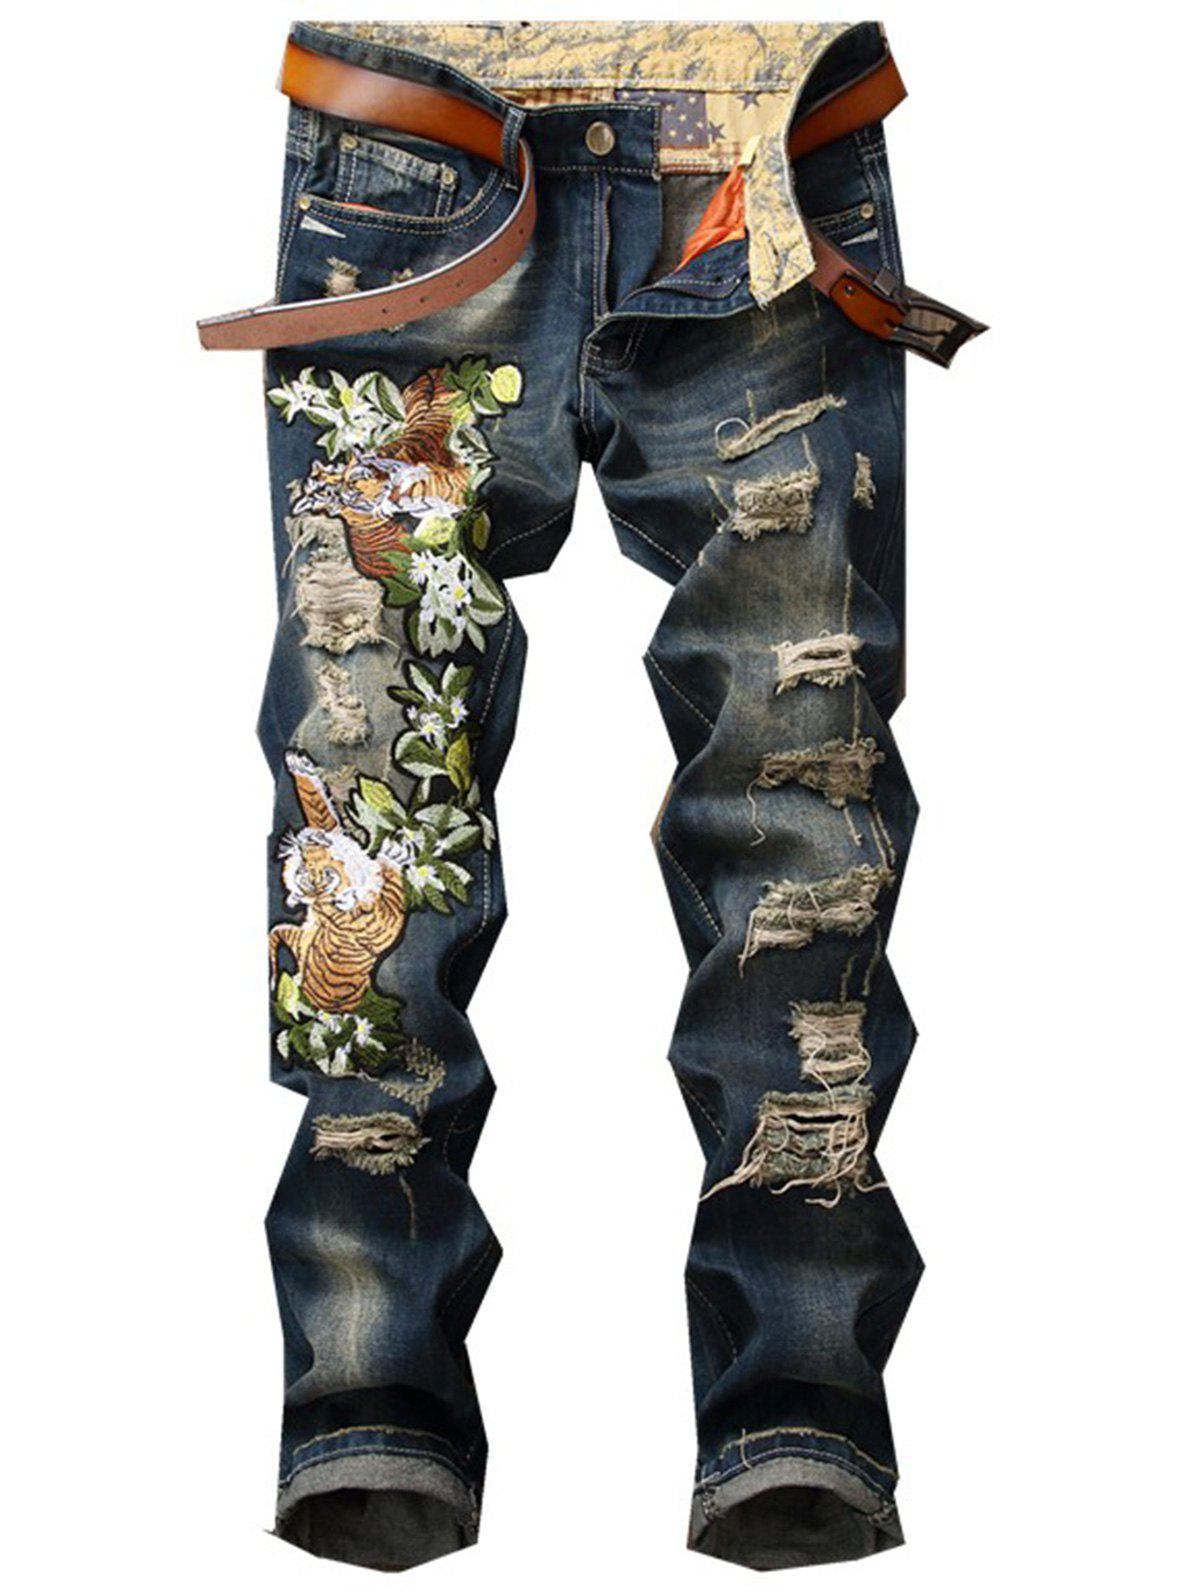 Tiger and Floral Embroidered Zipper Fly Ripped Jeans cartoon embroidered appliques pocket zipper fly ripped jeans